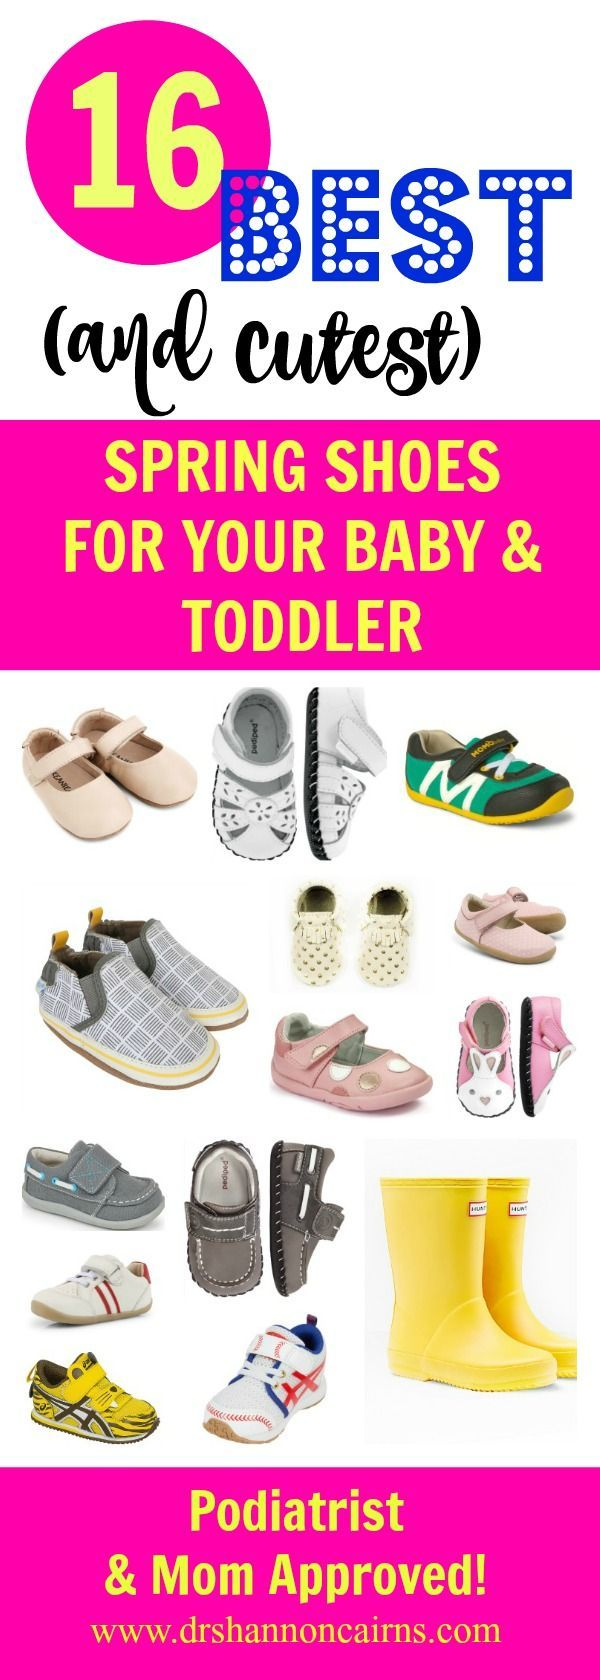 The 16 Best (and Cutest) Spring Shoes for Your Baby & Toddler - The Freckled Foot Doc